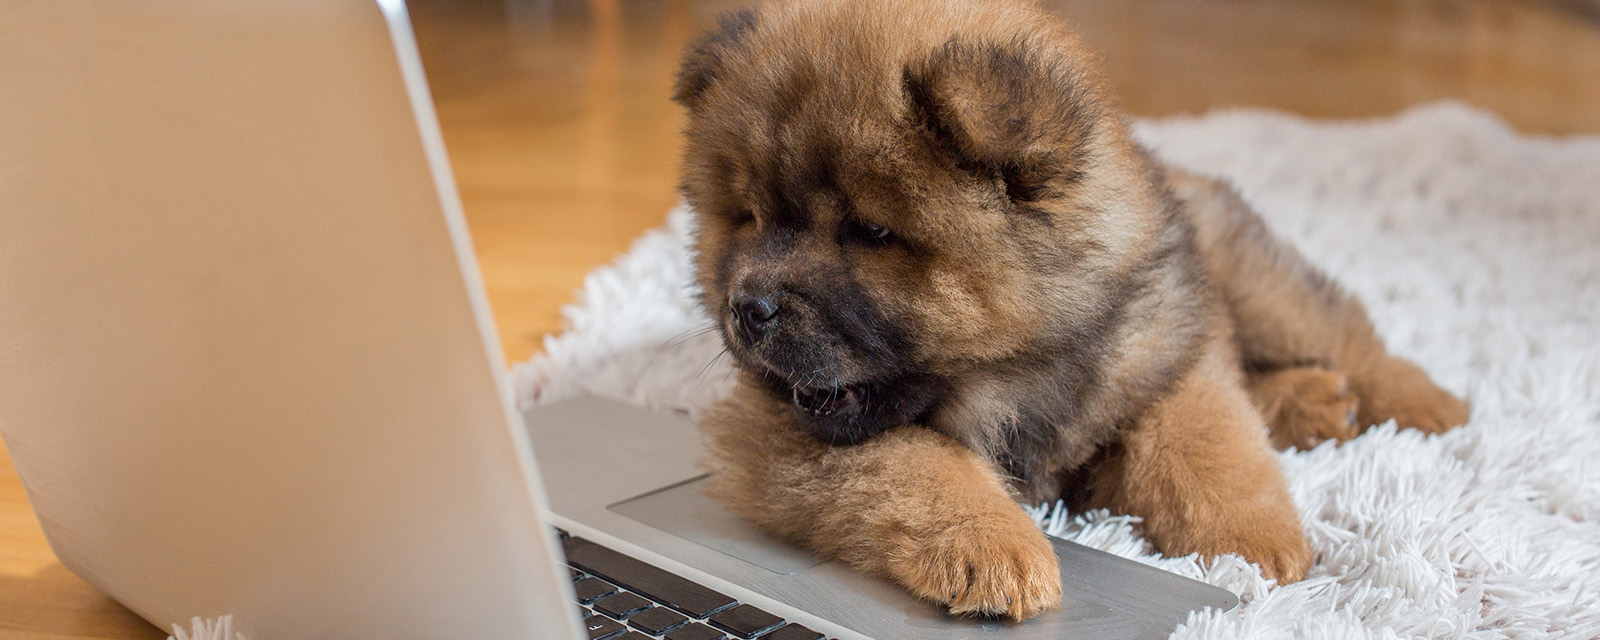 puppy sitting in front of a laptop